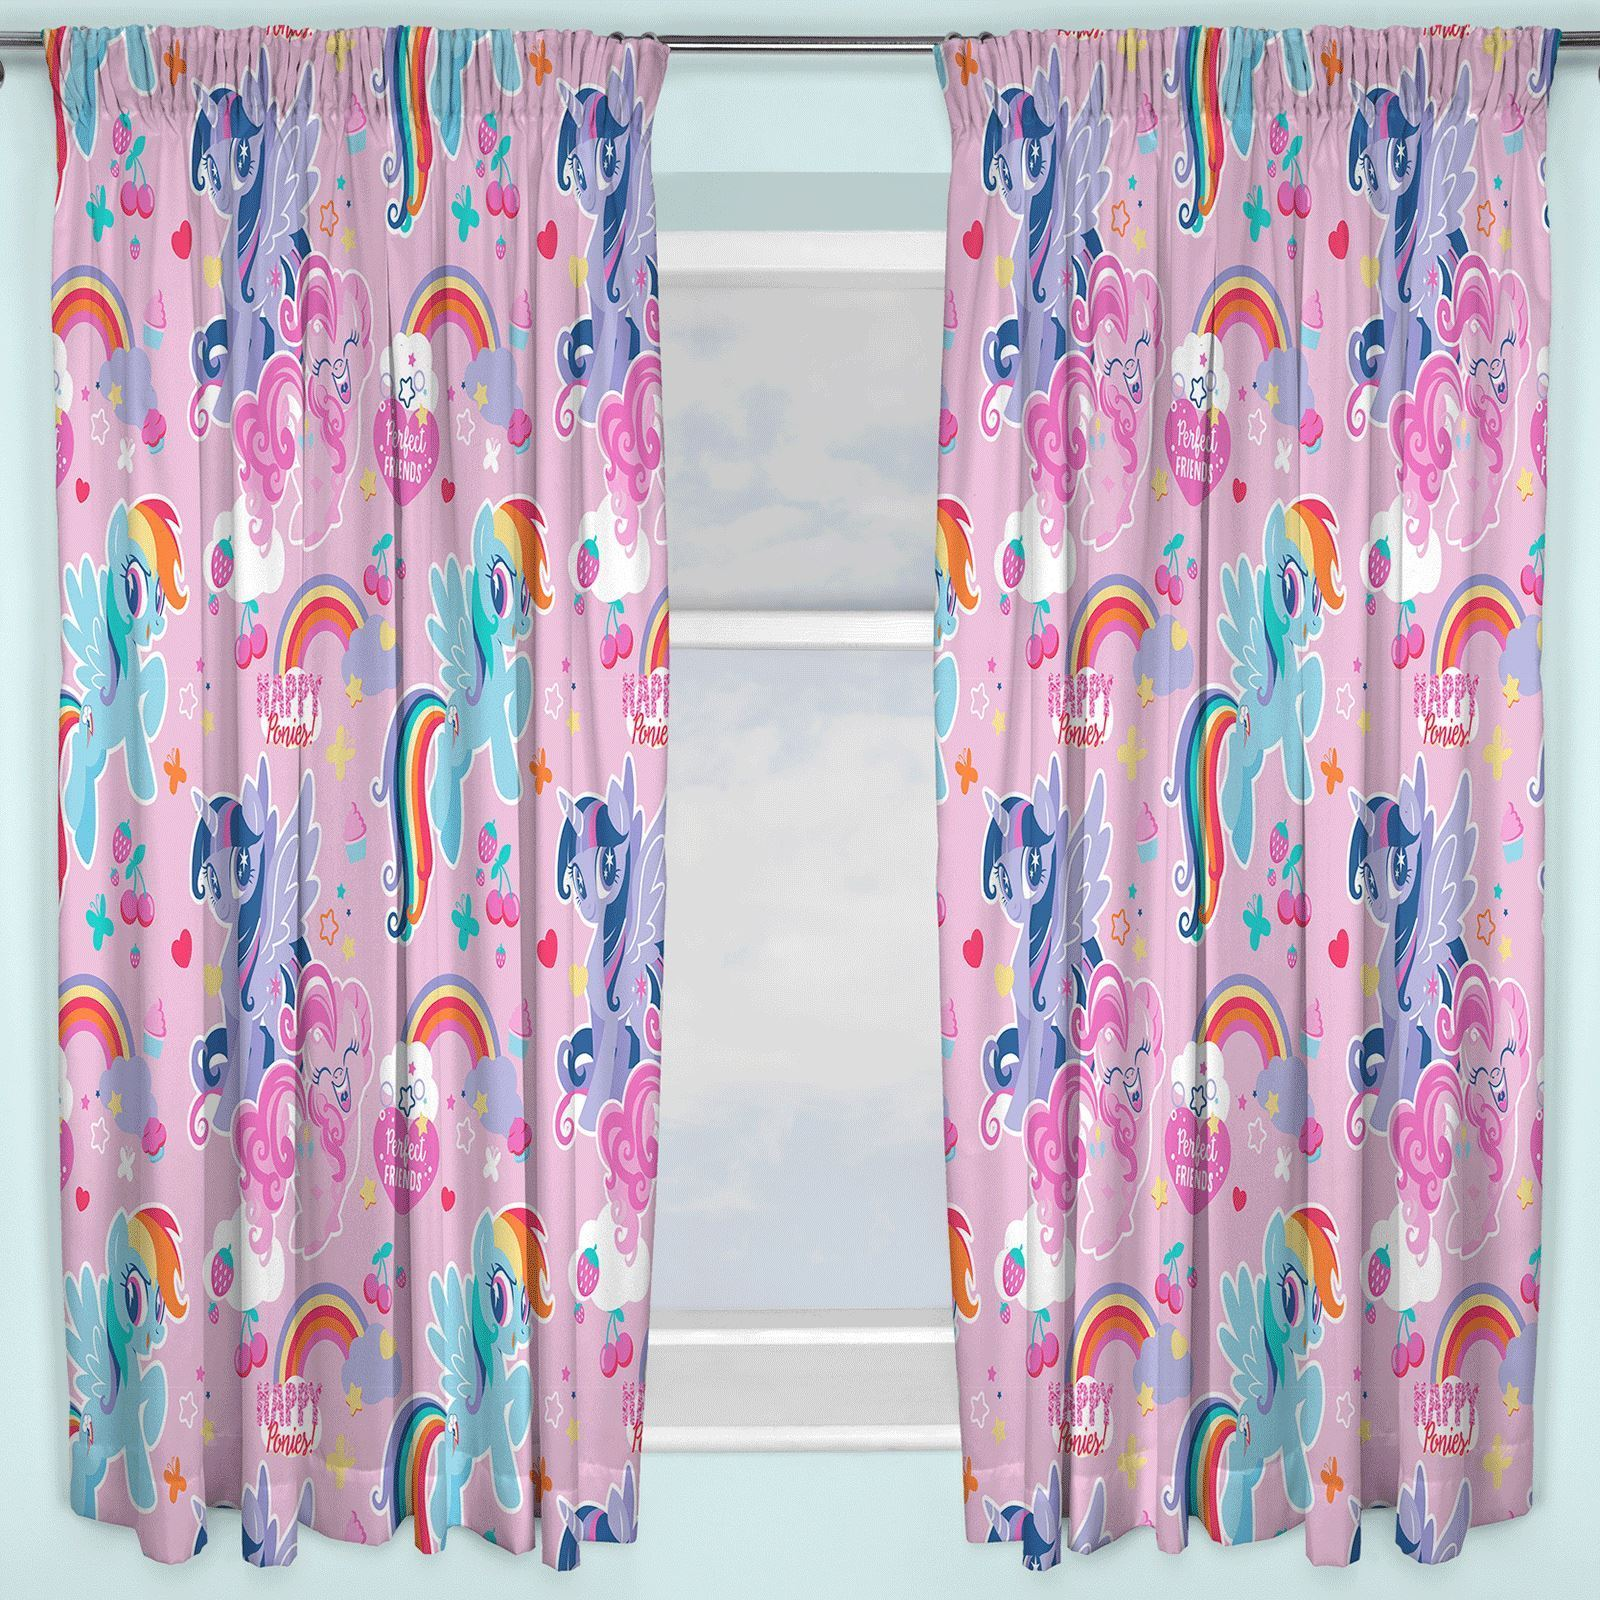 Details about NEW MY LITTLE PONY CRUSH DESIGN 54 INCH LENGTH CURTAINS GIRLS  PINK BEDROOM GIFT